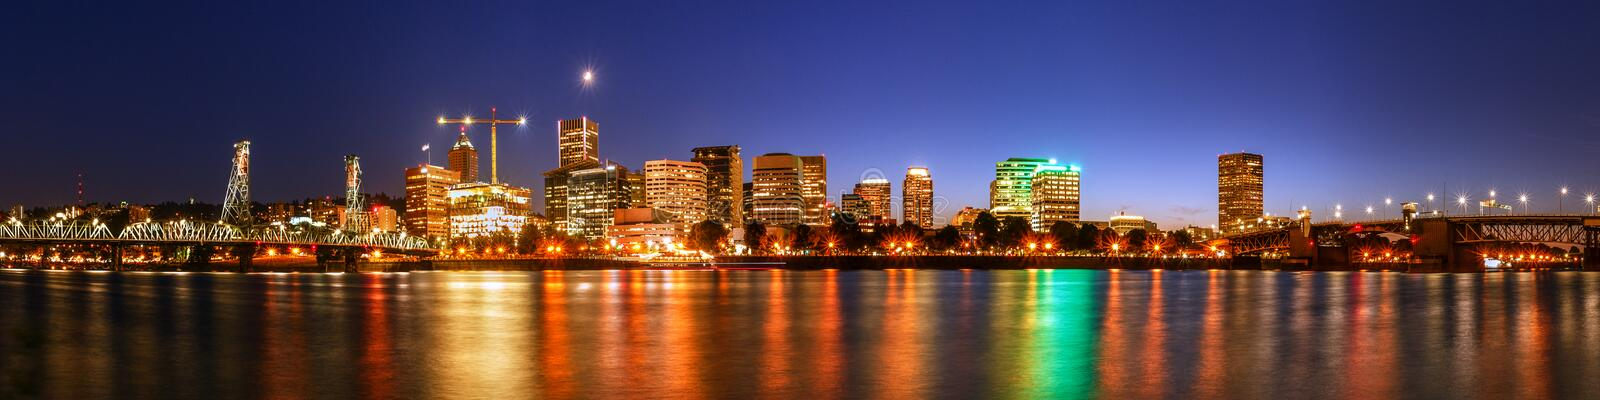 Portland Downtown Waterfront at night,City Skyline stock image